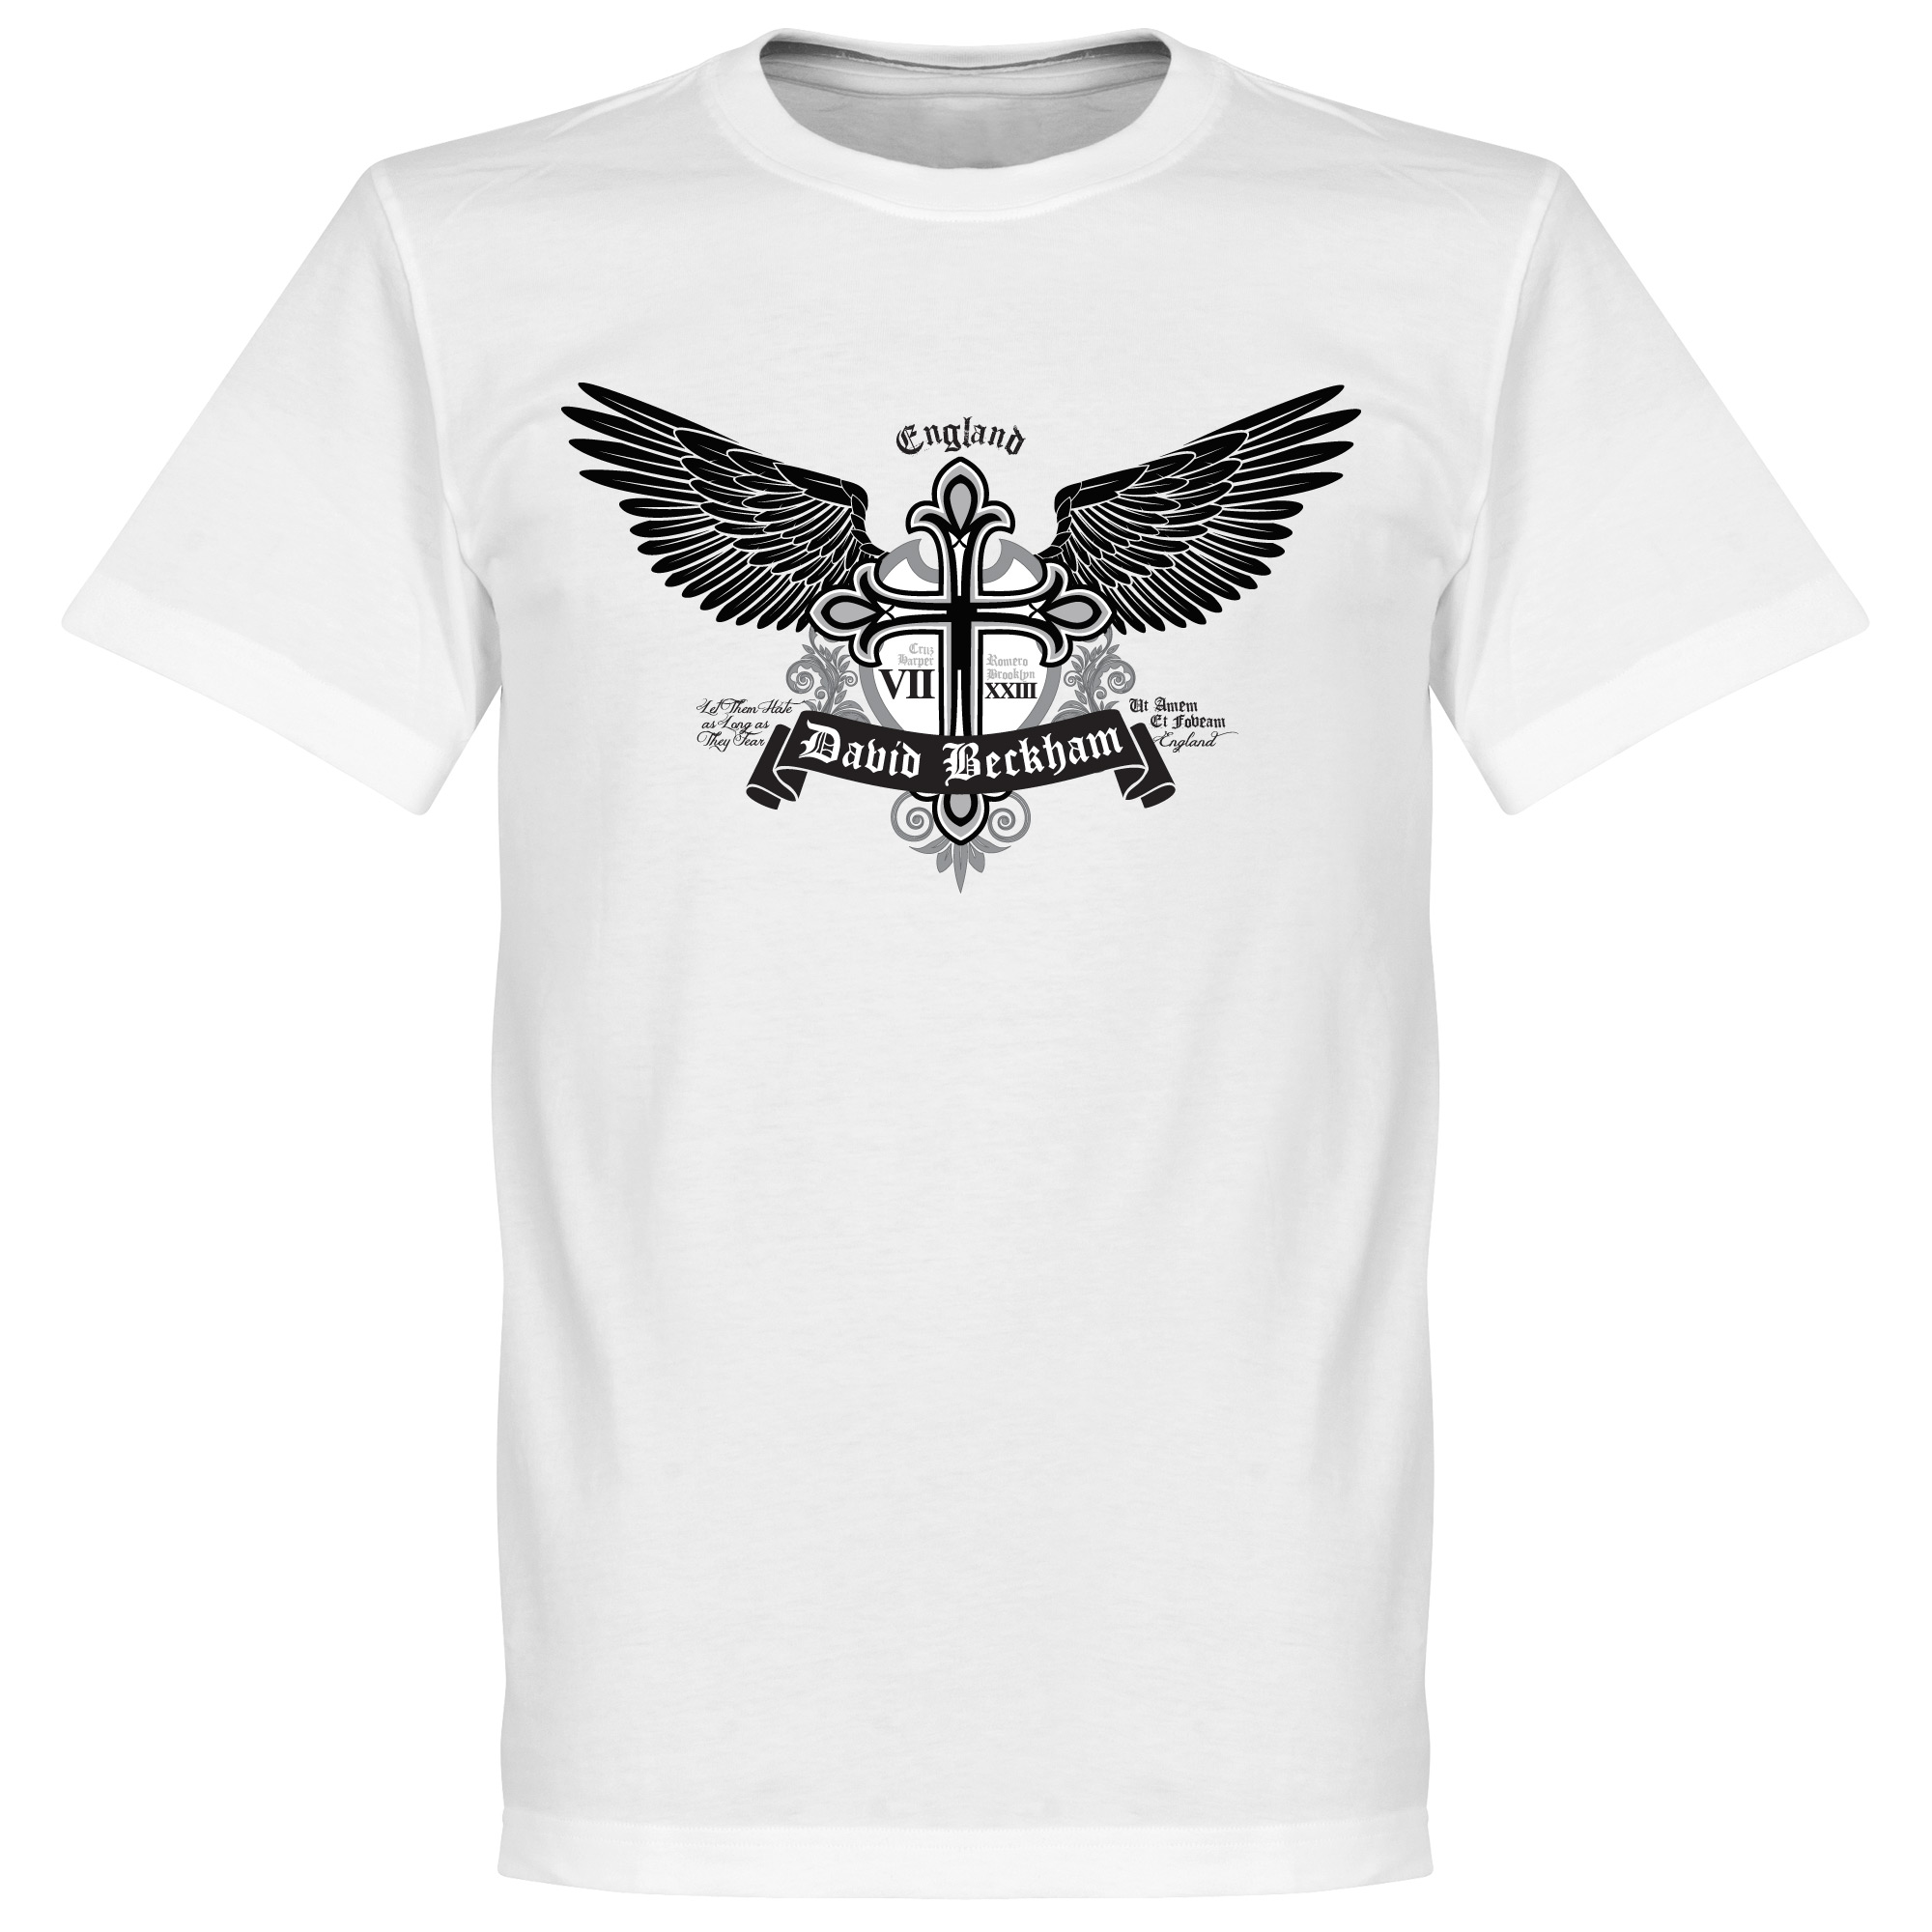 Beckham Tattoo Tee - White - XS